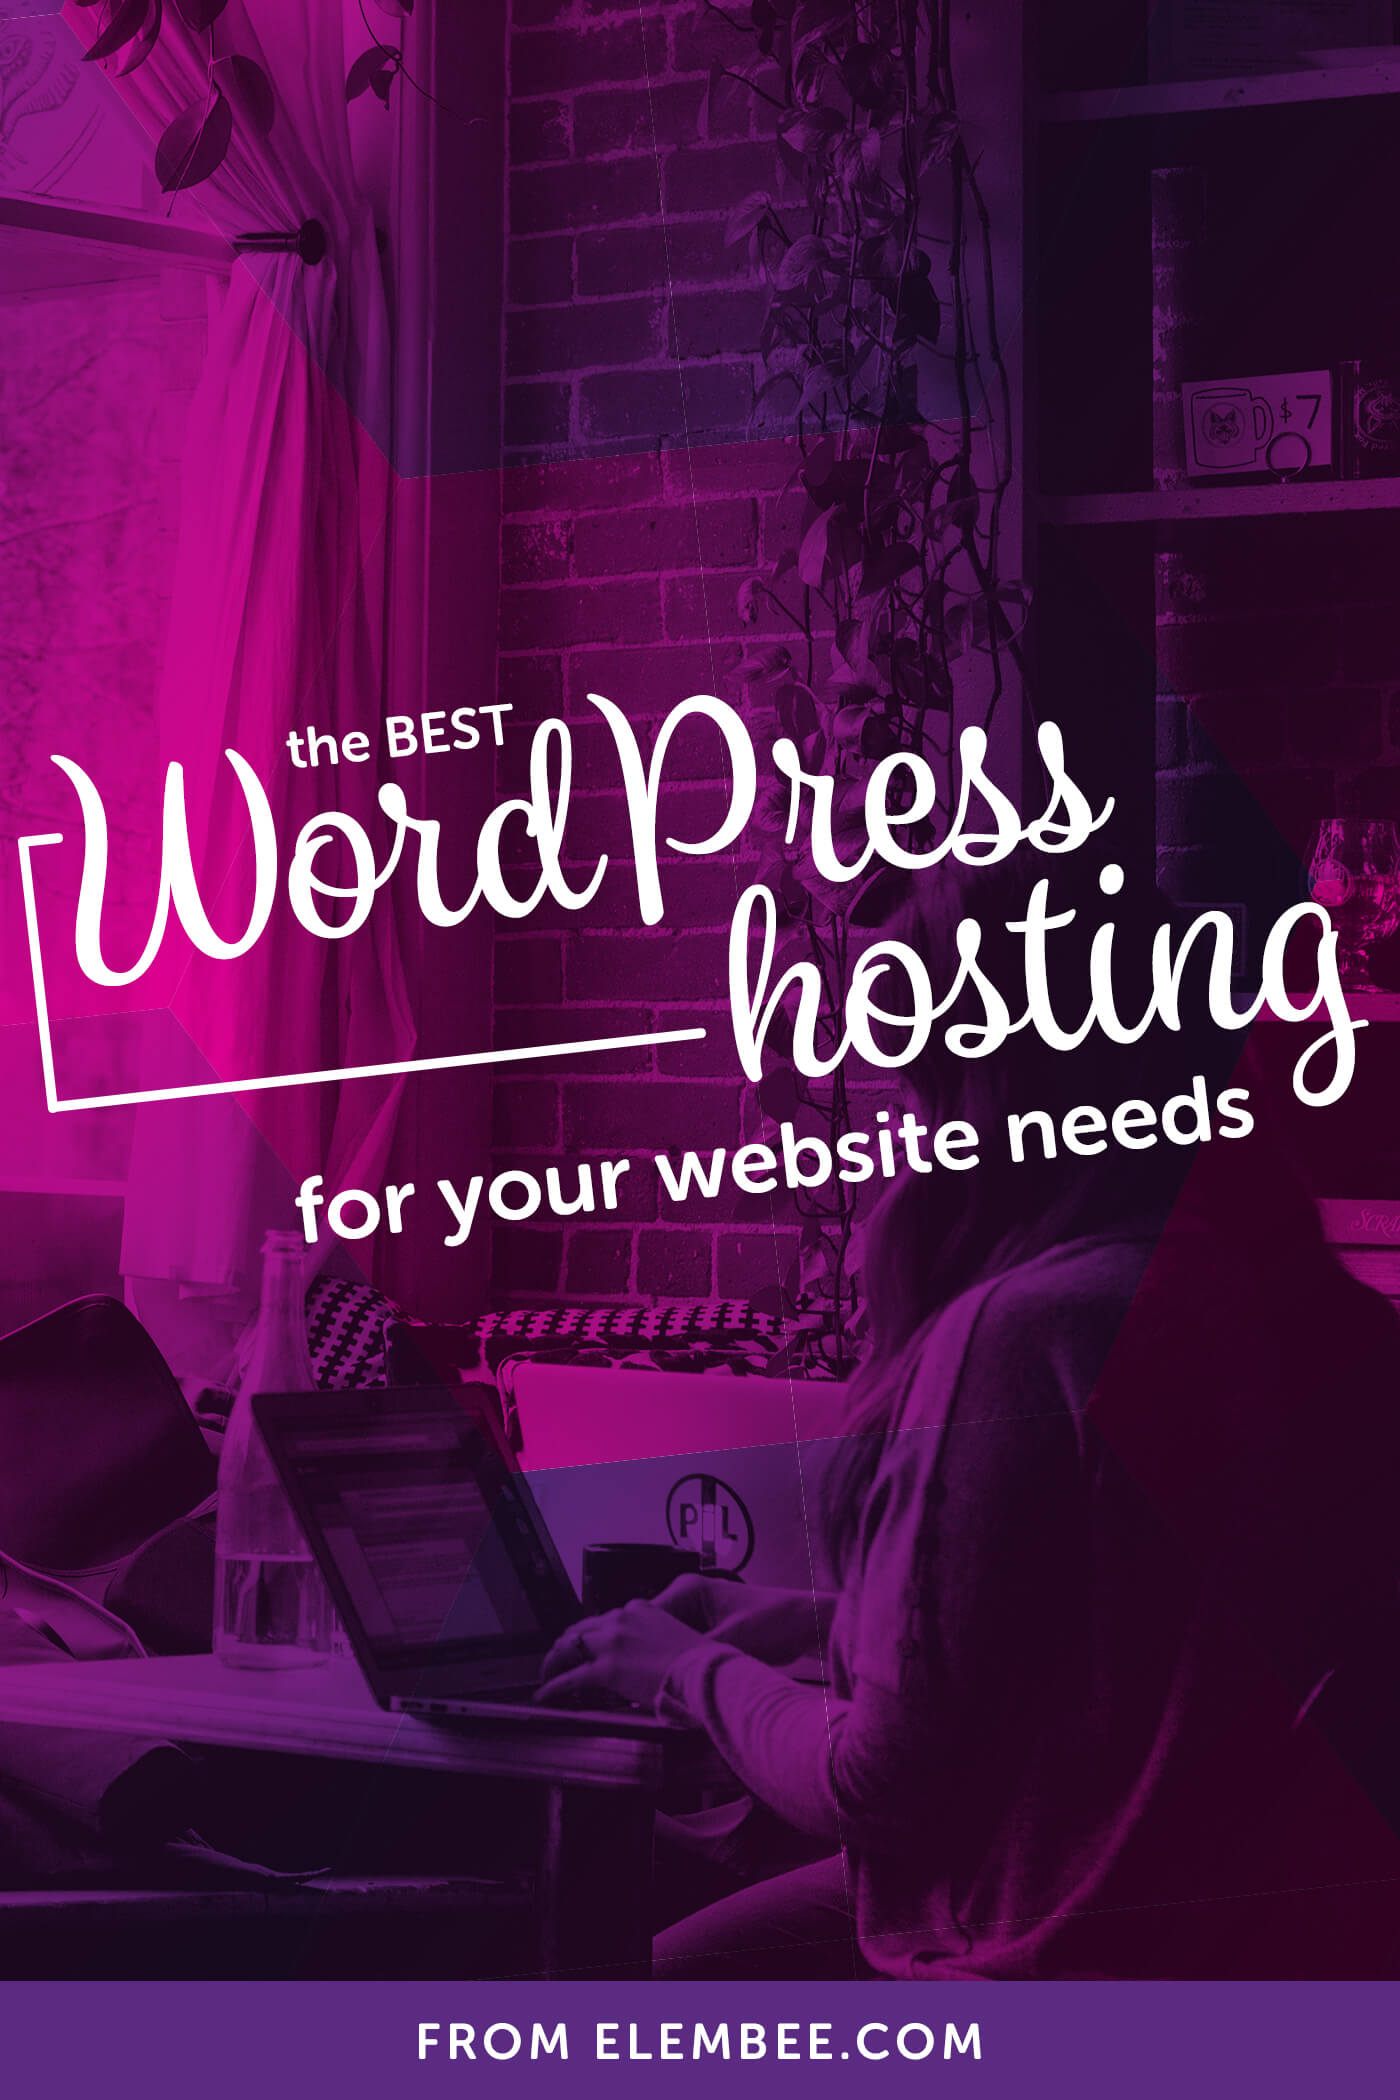 How to choose the best WordPress hosting for your website needs